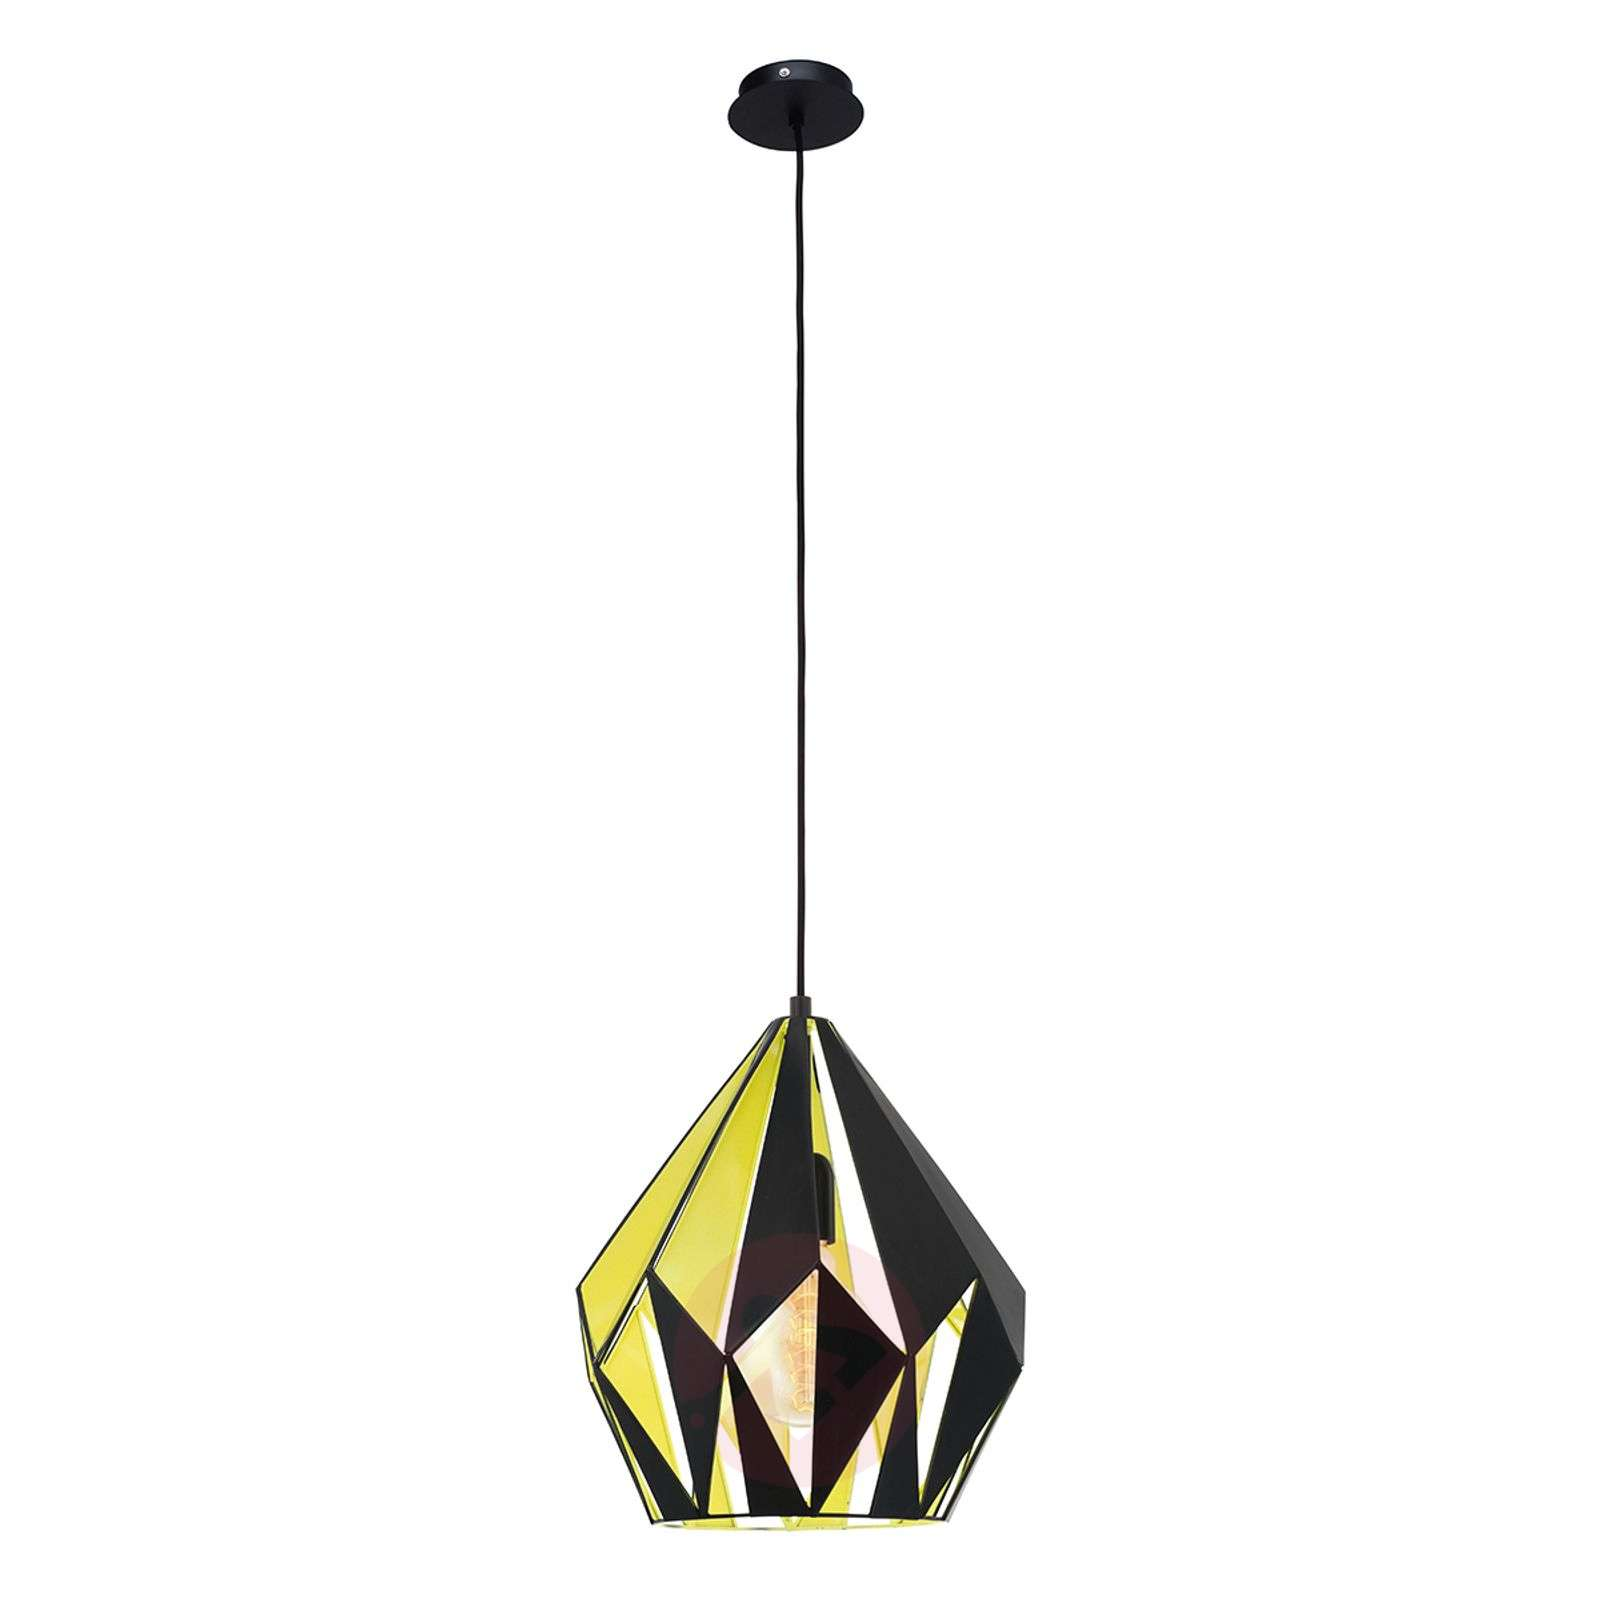 Suspension Carlton noir-jaune-3031608-03